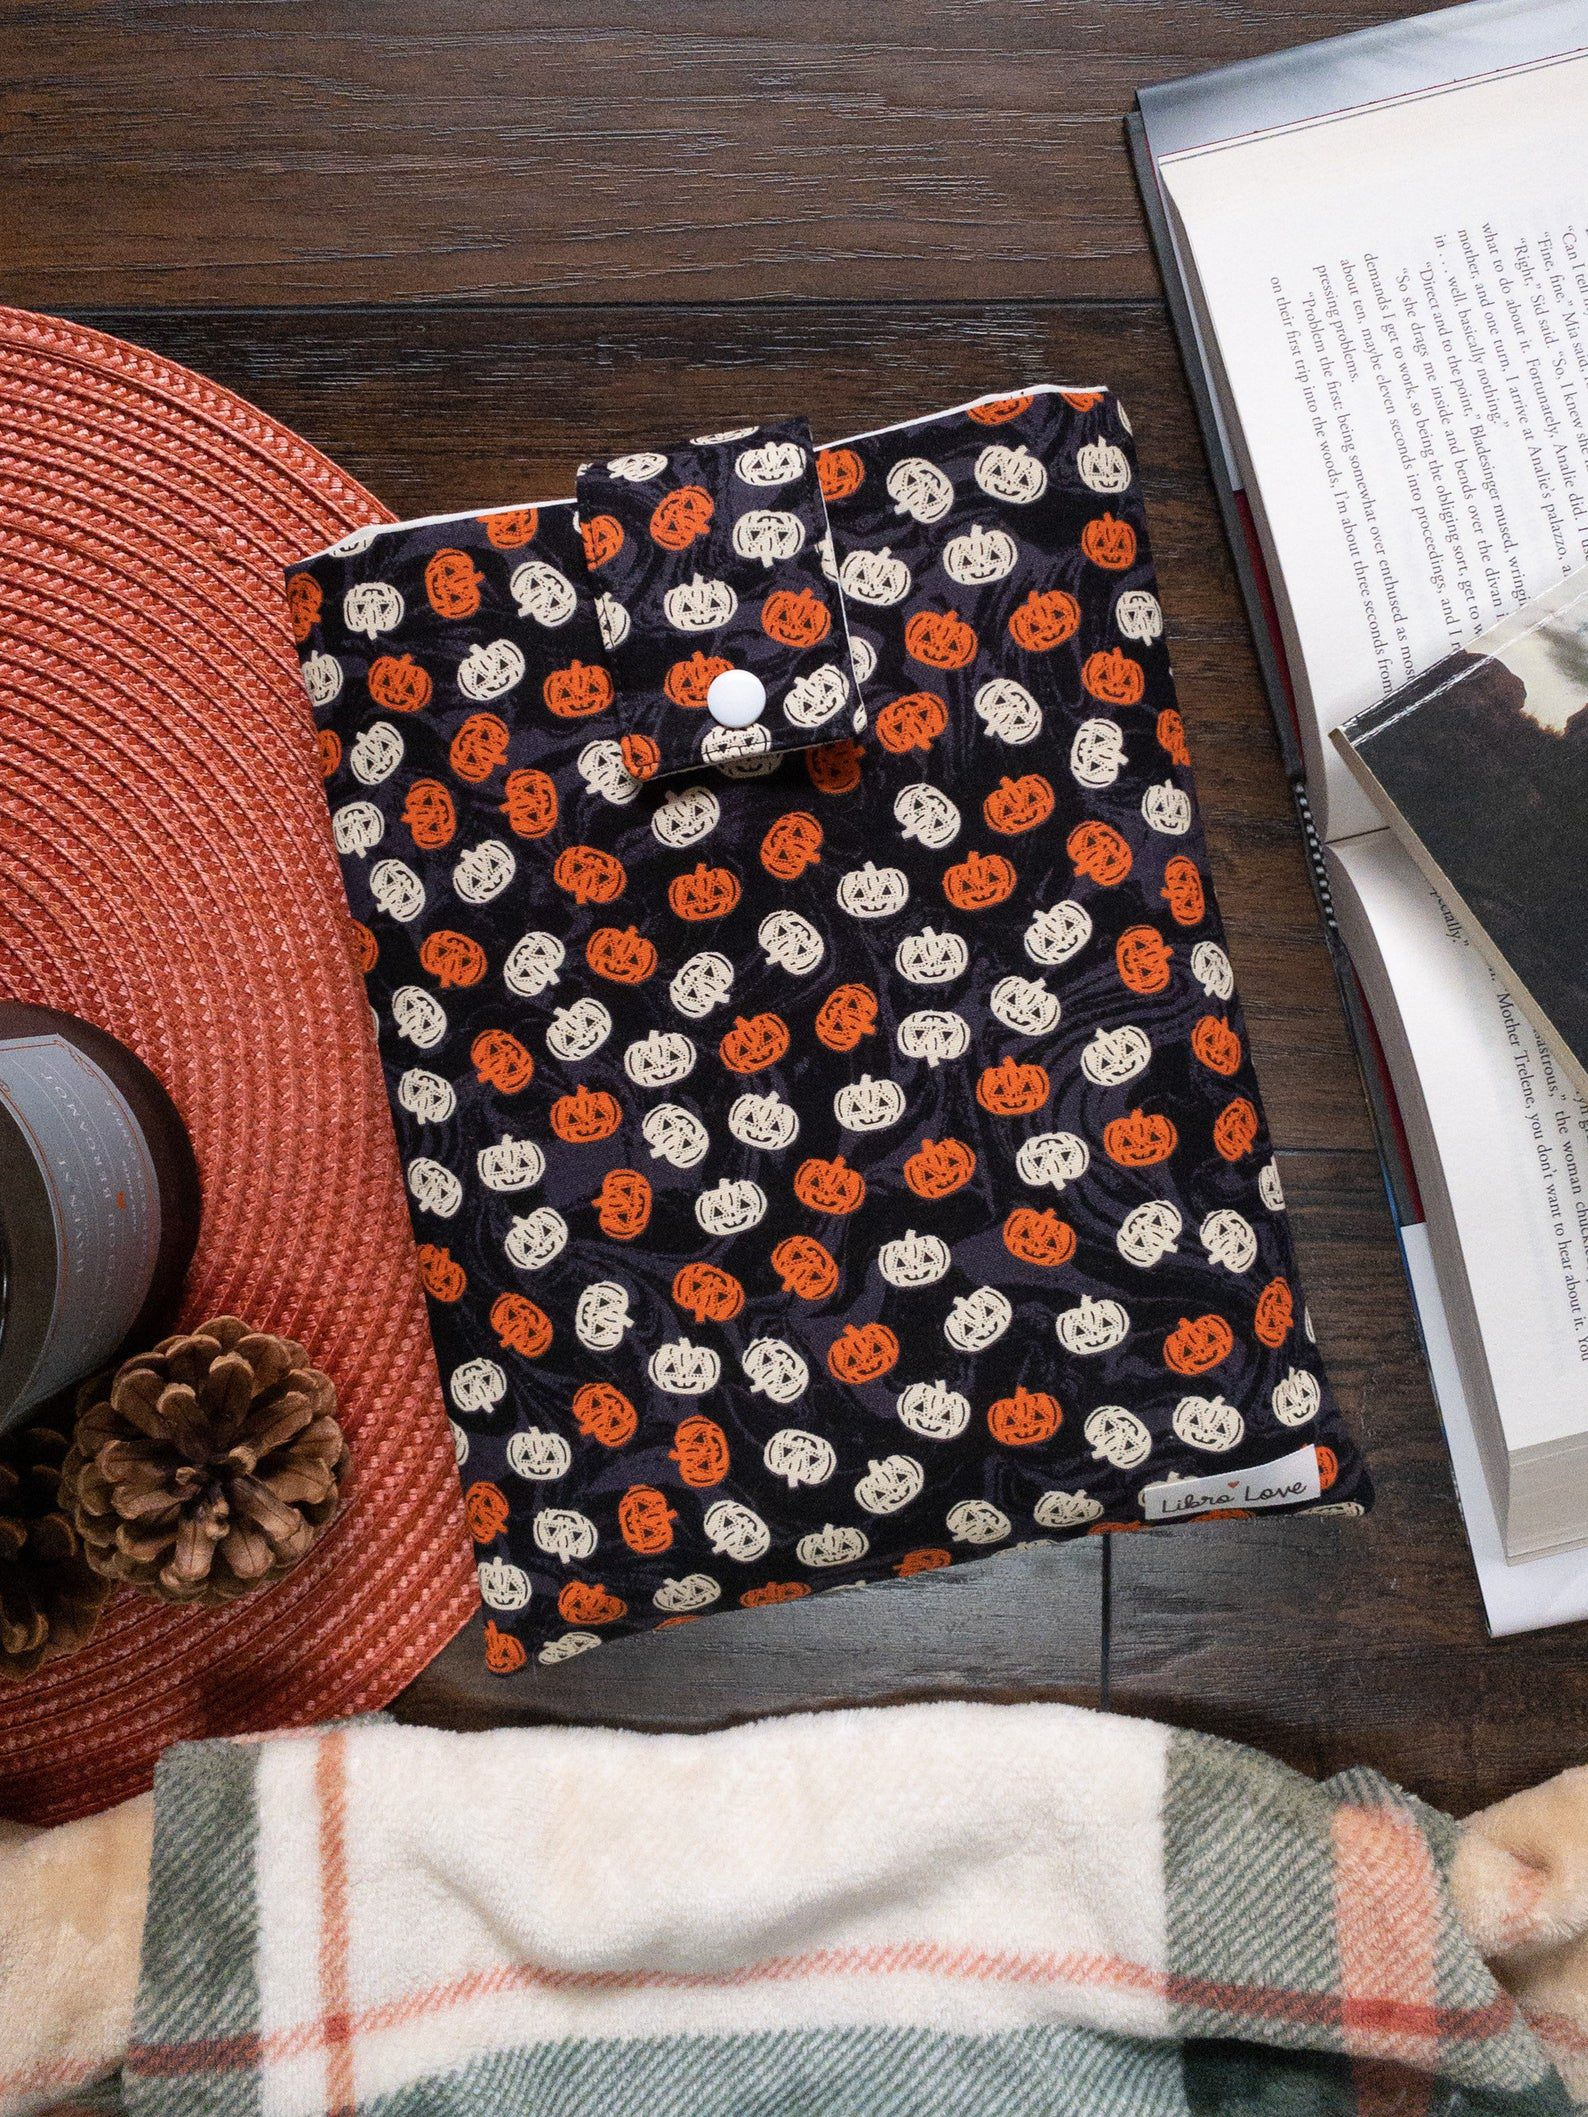 Image of black book sleeve dotted in orange and white pumpkins.